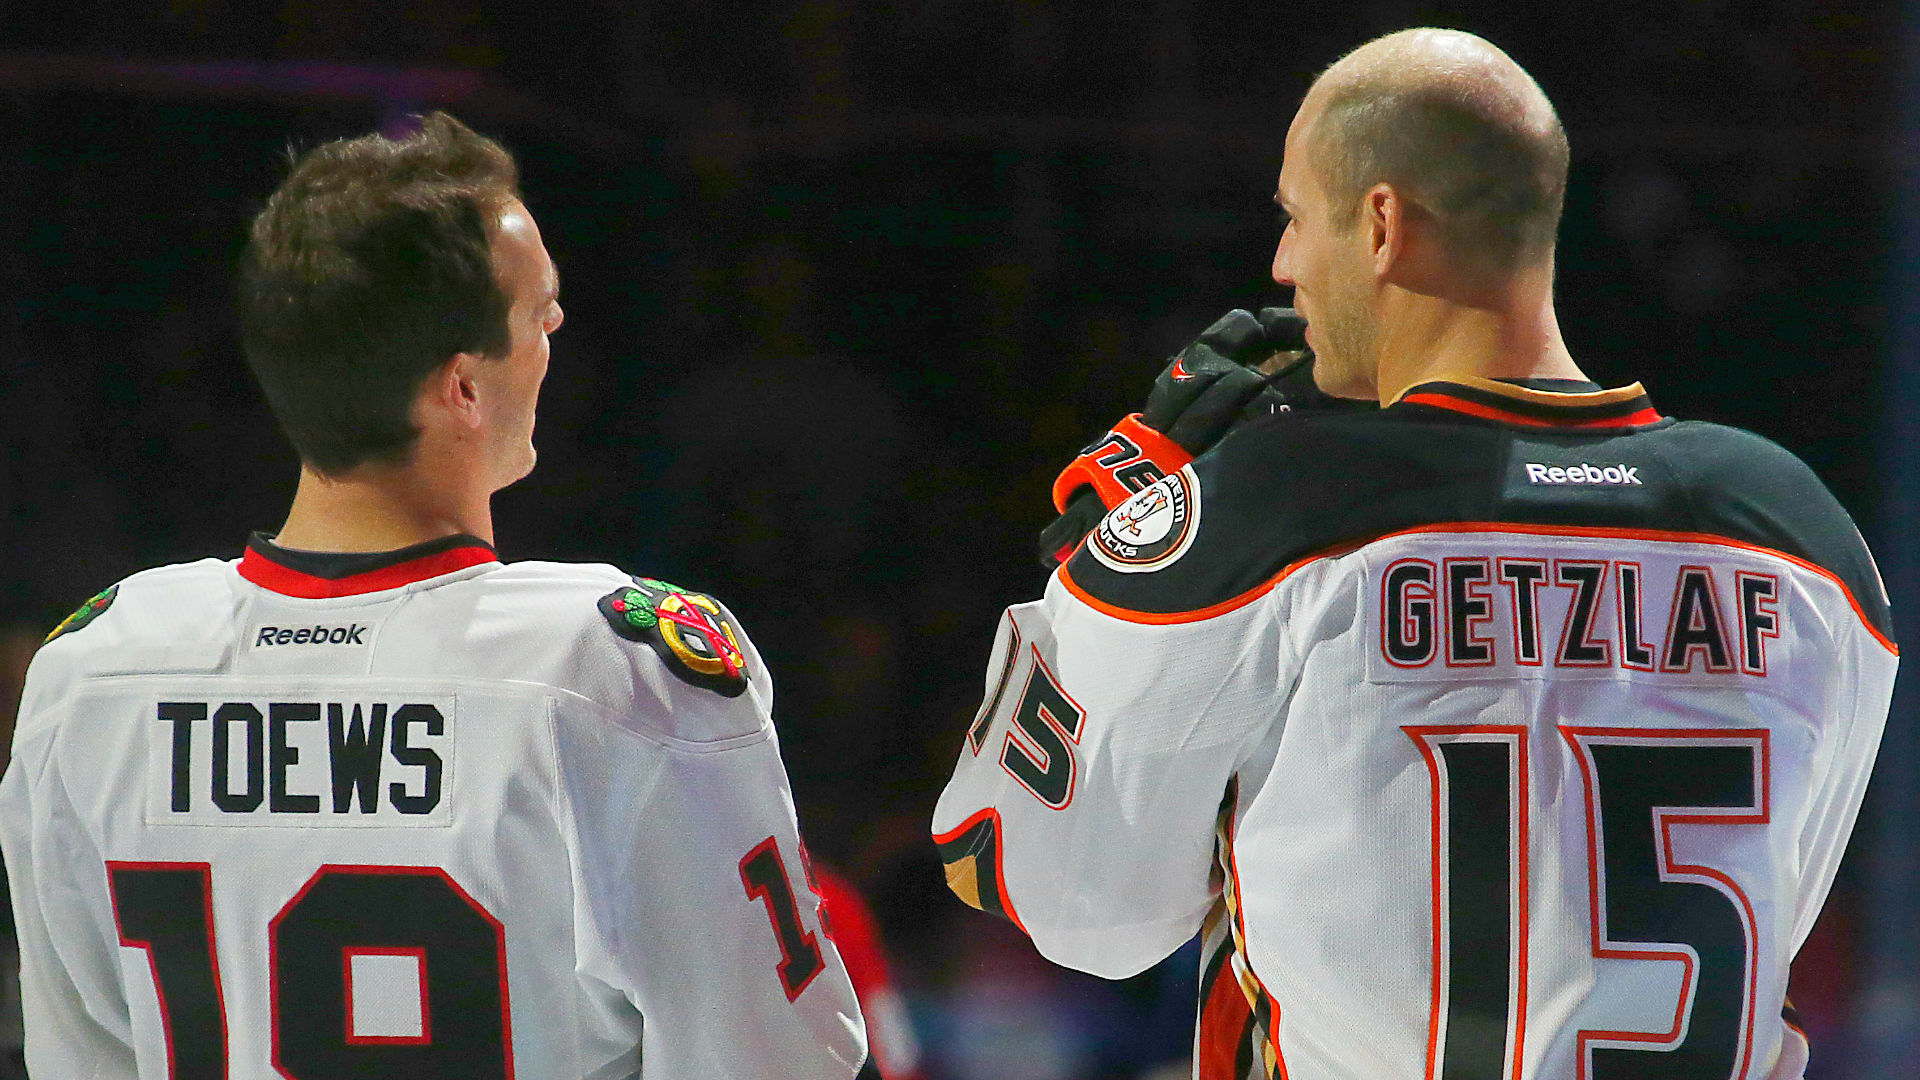 toews-getzlaf051715-getty-ftr.jpg